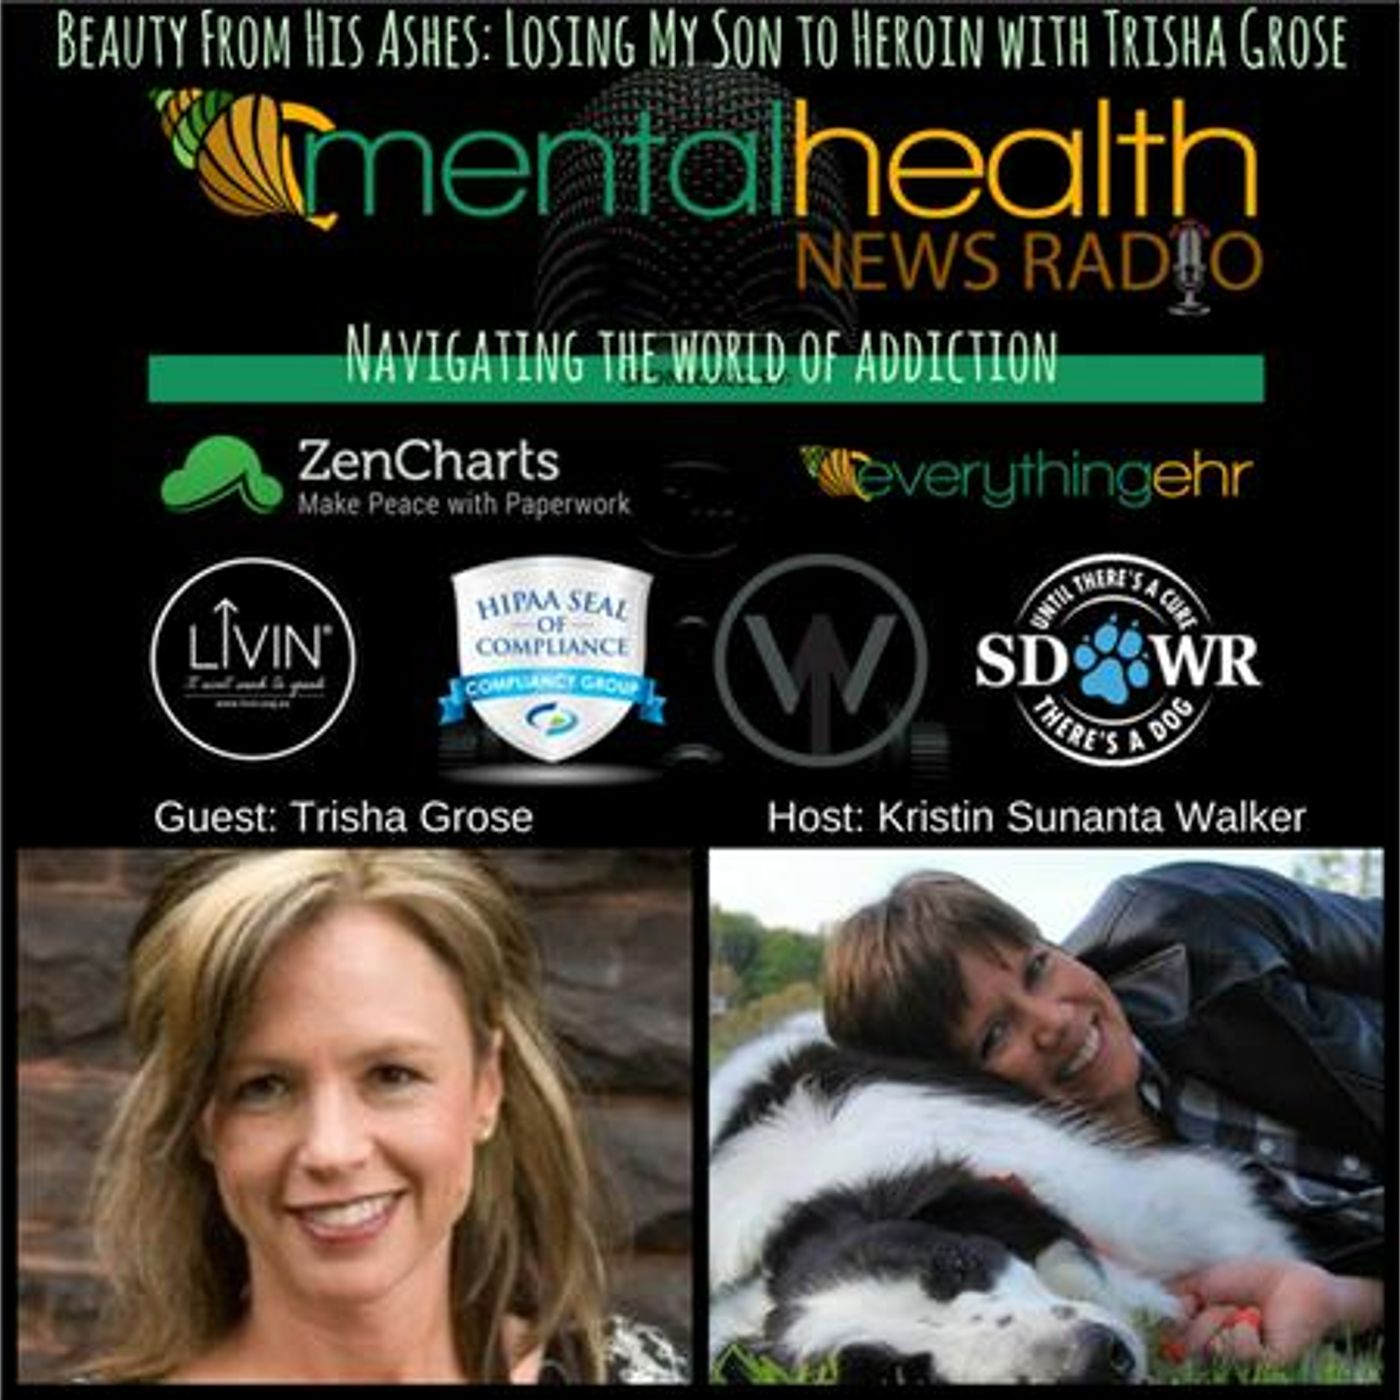 Mental Health News Radio - Beauty From His Ashes: Losing My Son to Heroin with Trisha Grose